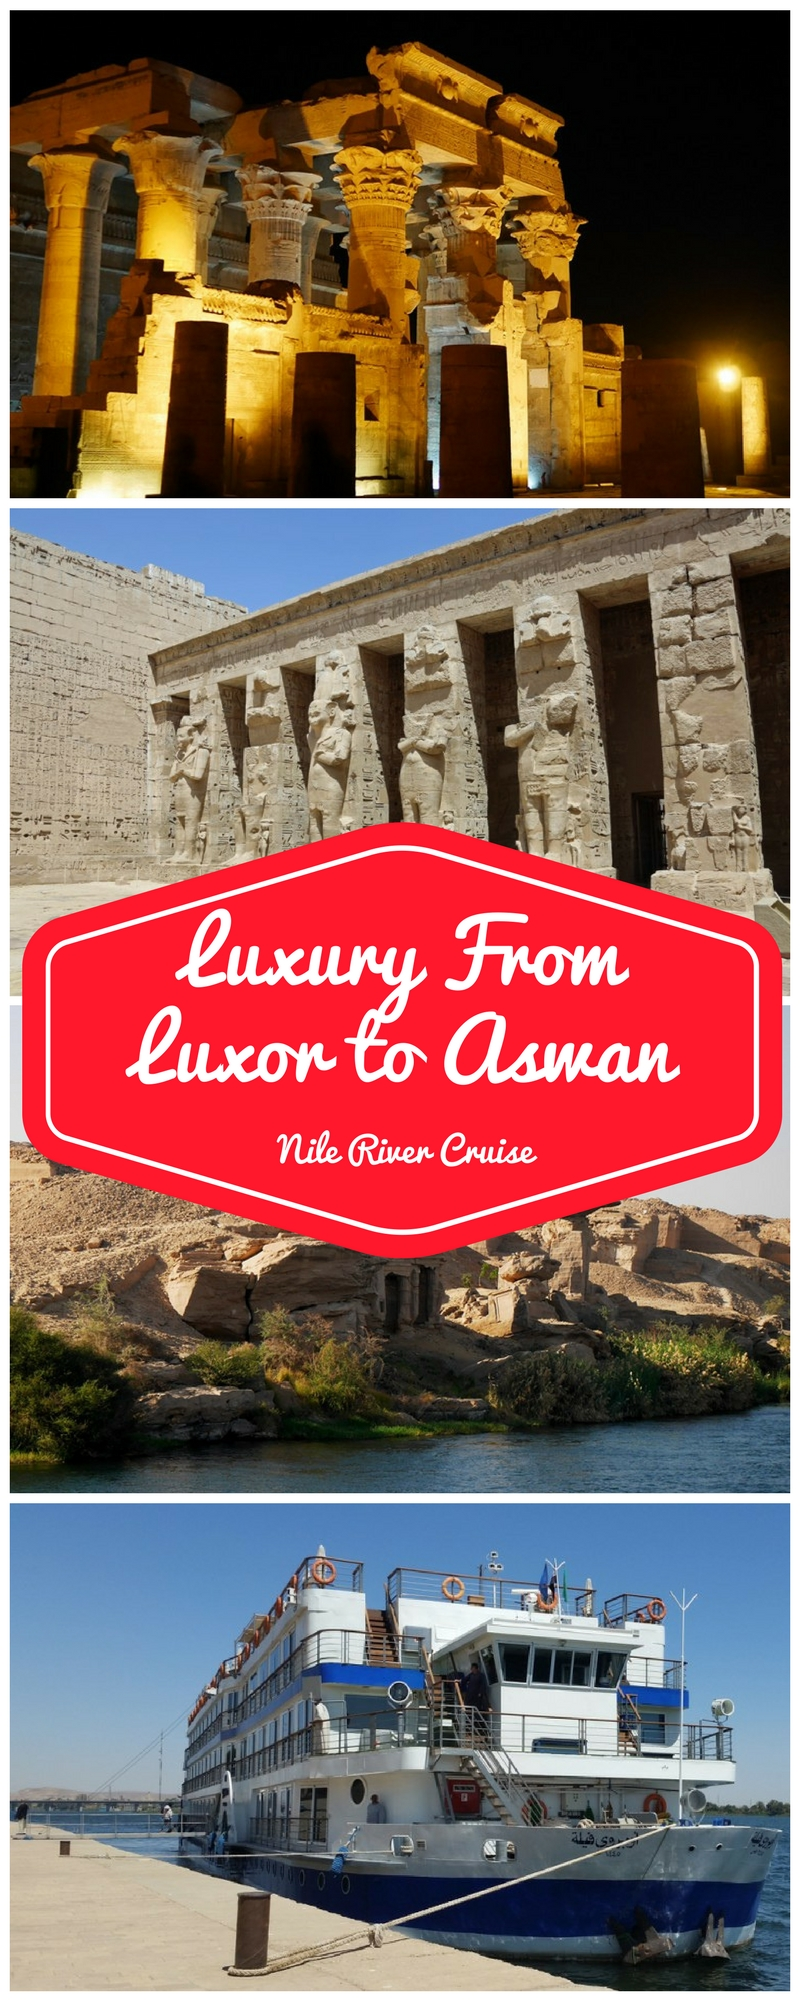 https://www.london-unattached.com/2016/03/nile-river-cruise-luxor-aswan/